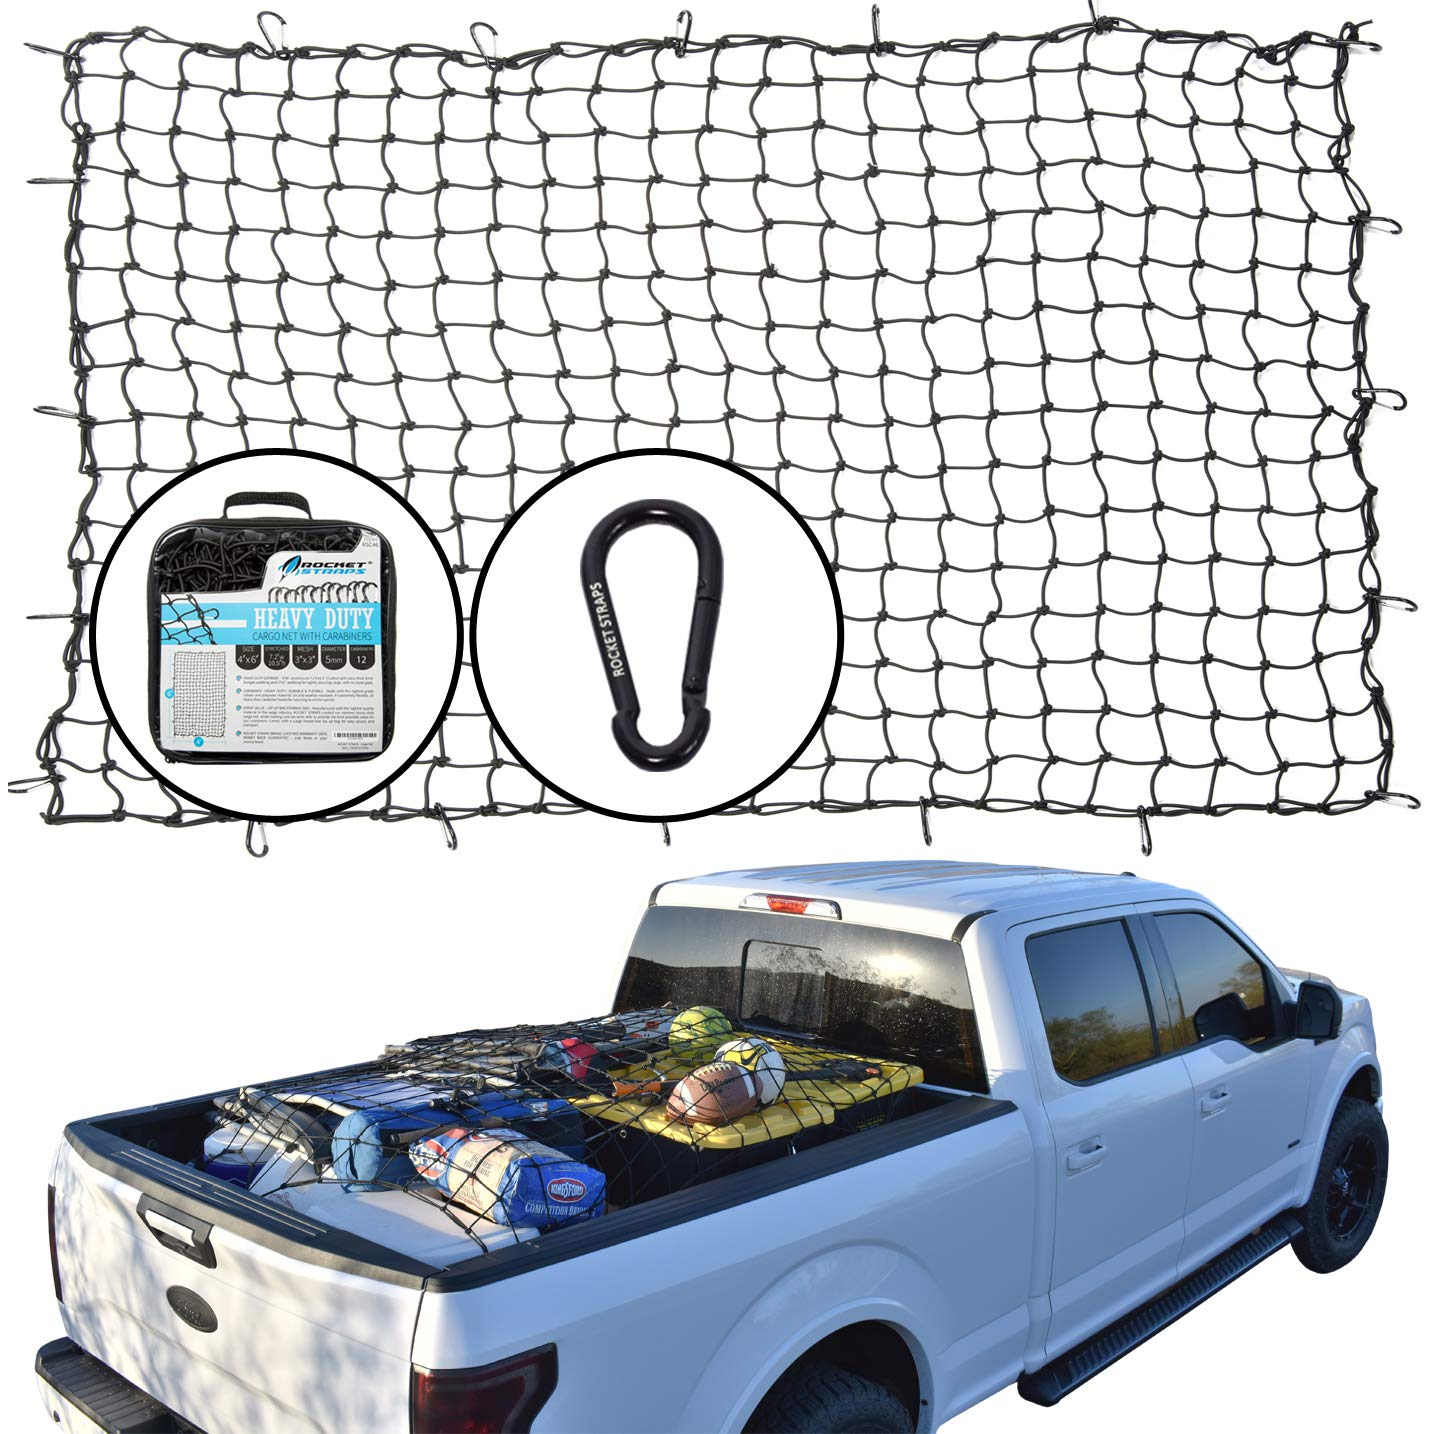 "Rocket Straps | Cargo Net 4'X6' Bungee Net | Truck Bed Net Includes (12) Steel Carabiners & Bag | Heavy Duty 5mm 3""X3"" Mesh 